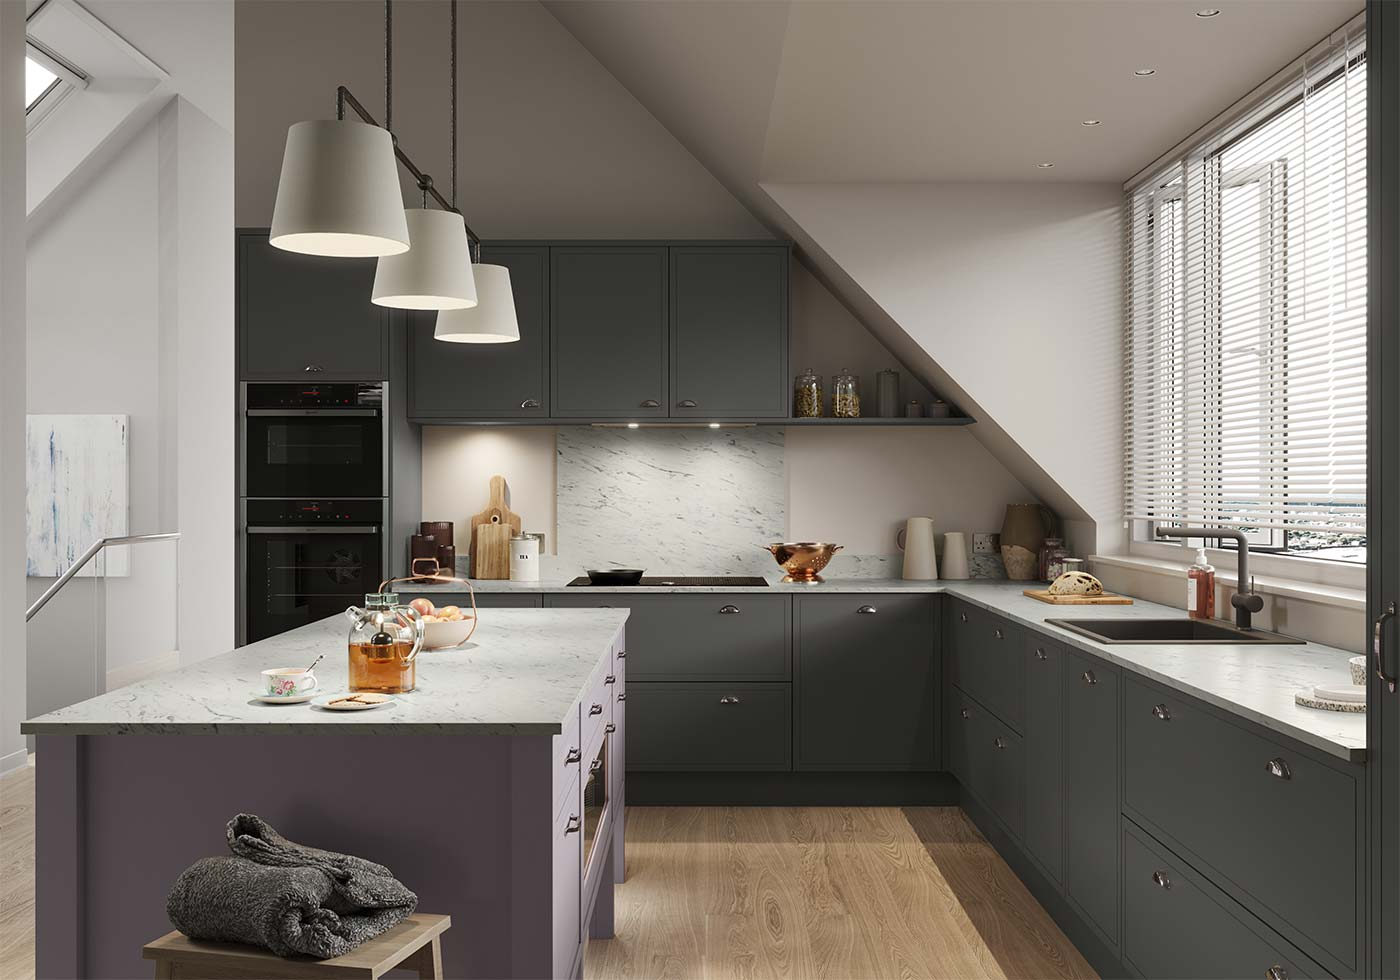 Inframe effect Classic modern kitchen